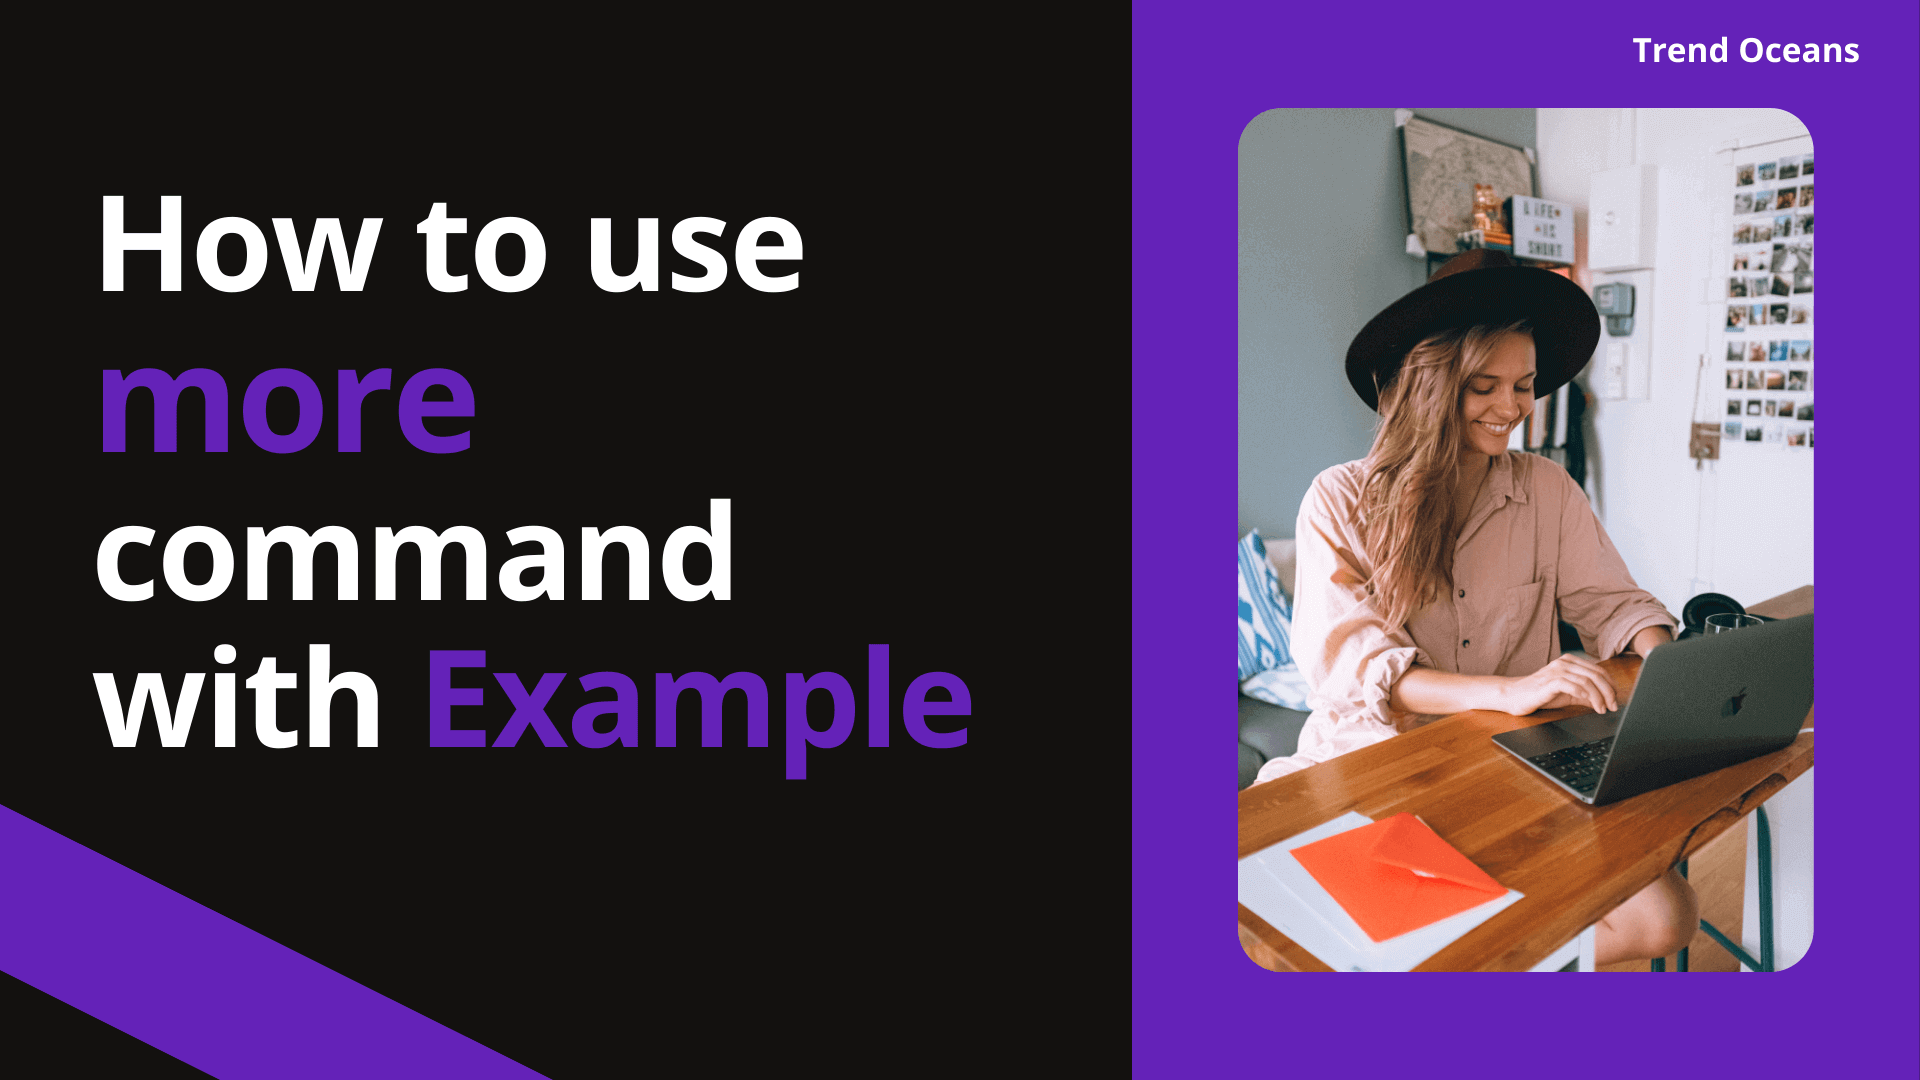 How to use more command